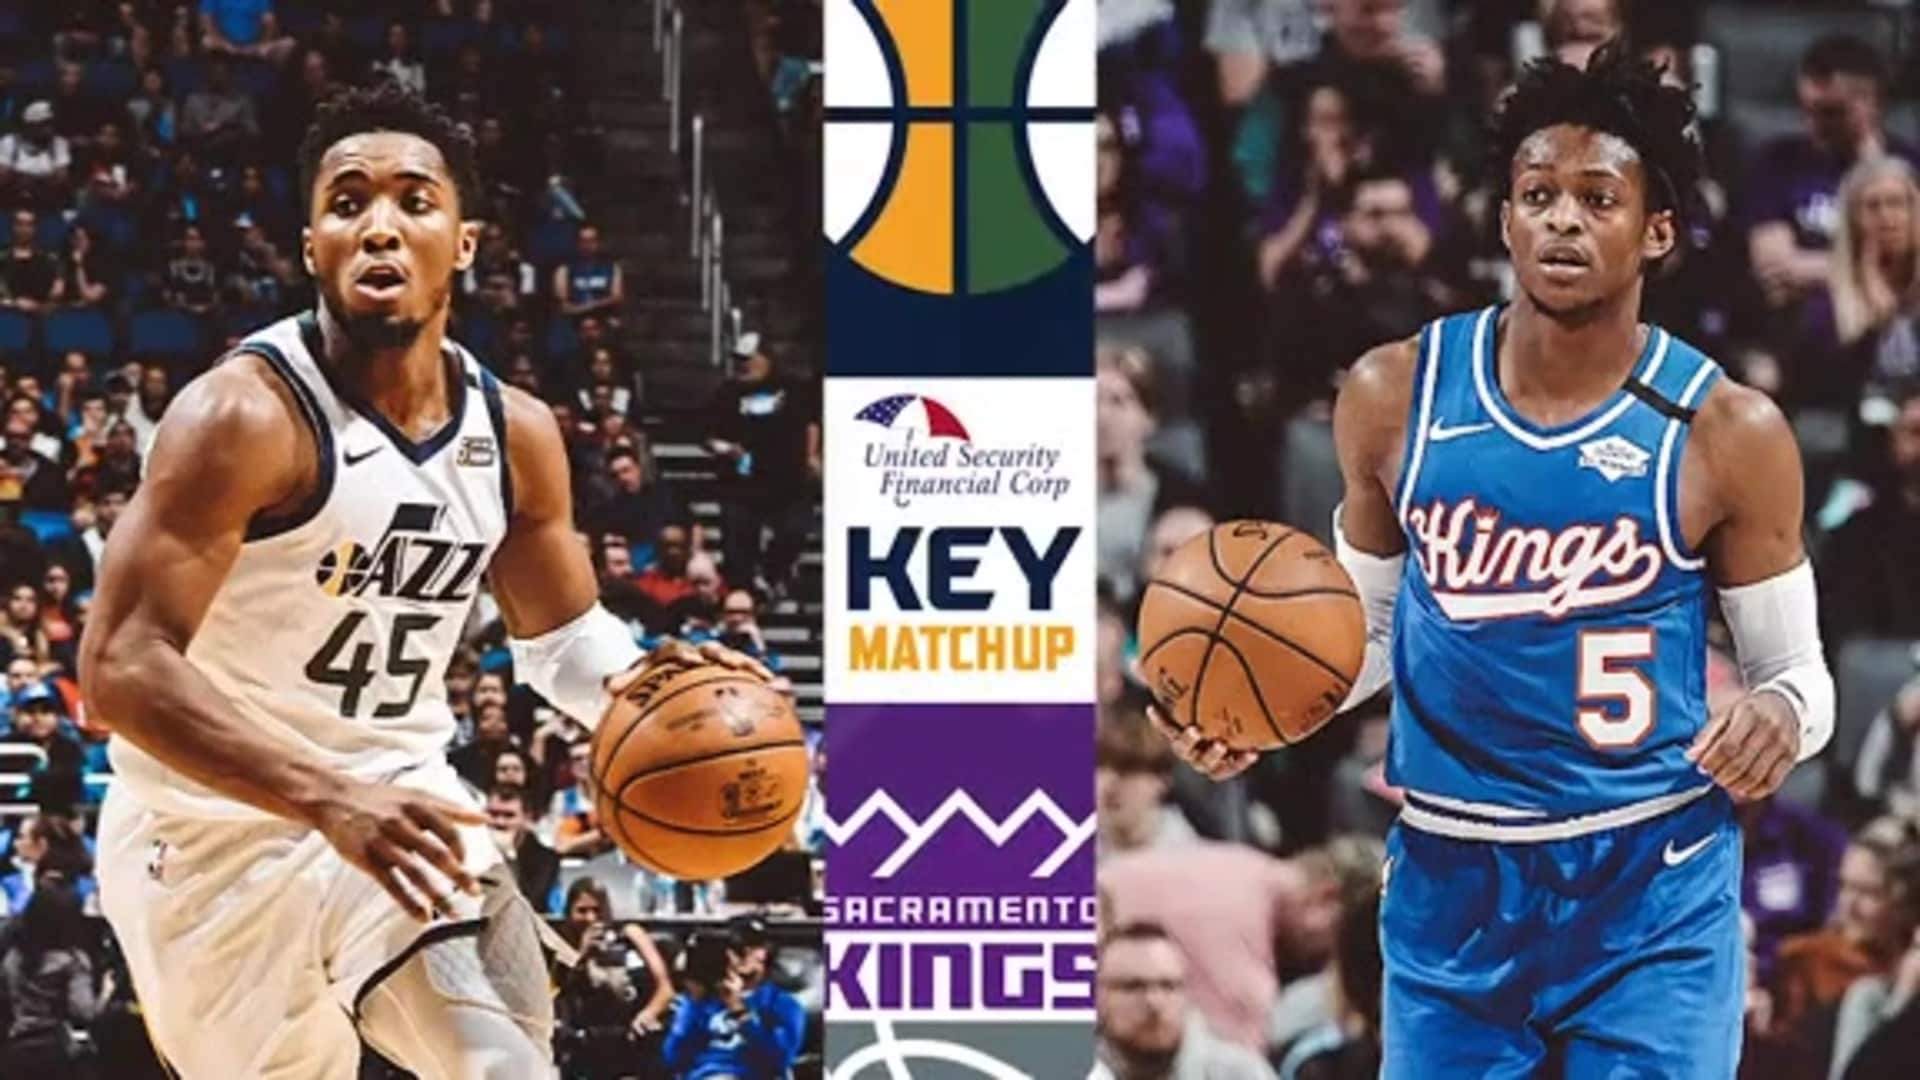 Donovan Mitchell vs. De'Aaron Fox - Key Matchup